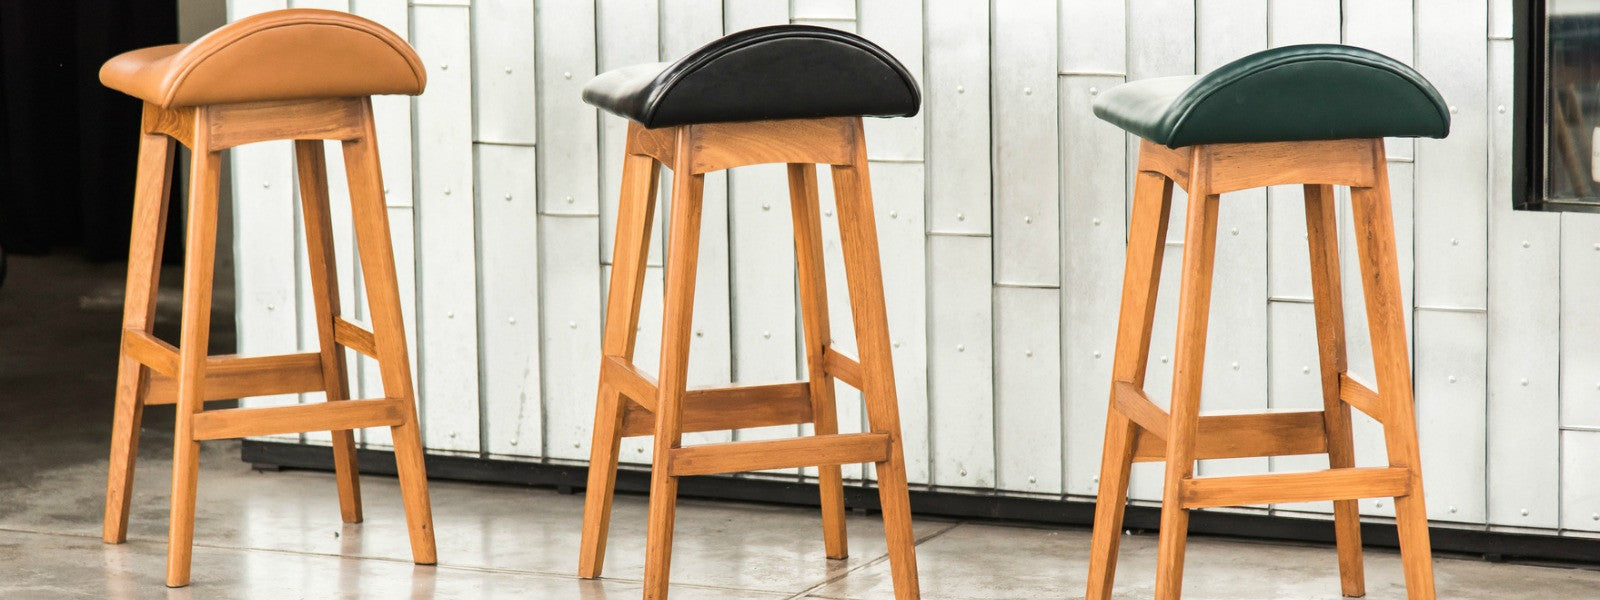 Simply Bar Stools Australian Online Store For Bar And Counter Stools